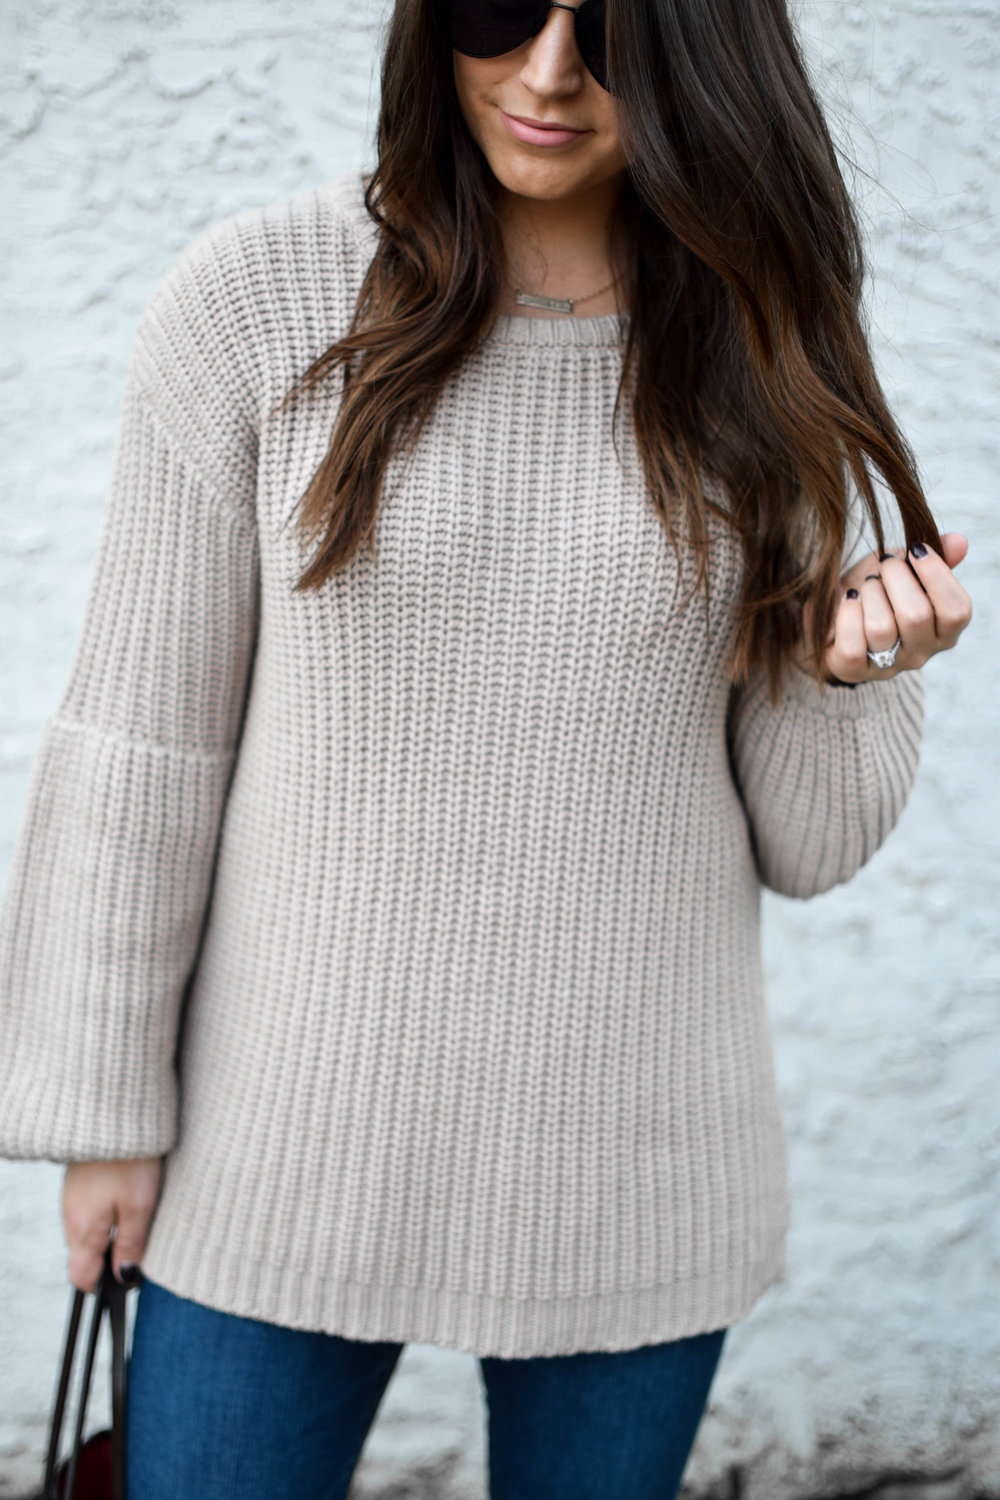 fall fashion / fall outfit idea / fall outfit inspiration / cozy sweater / chunky knit / fall feels